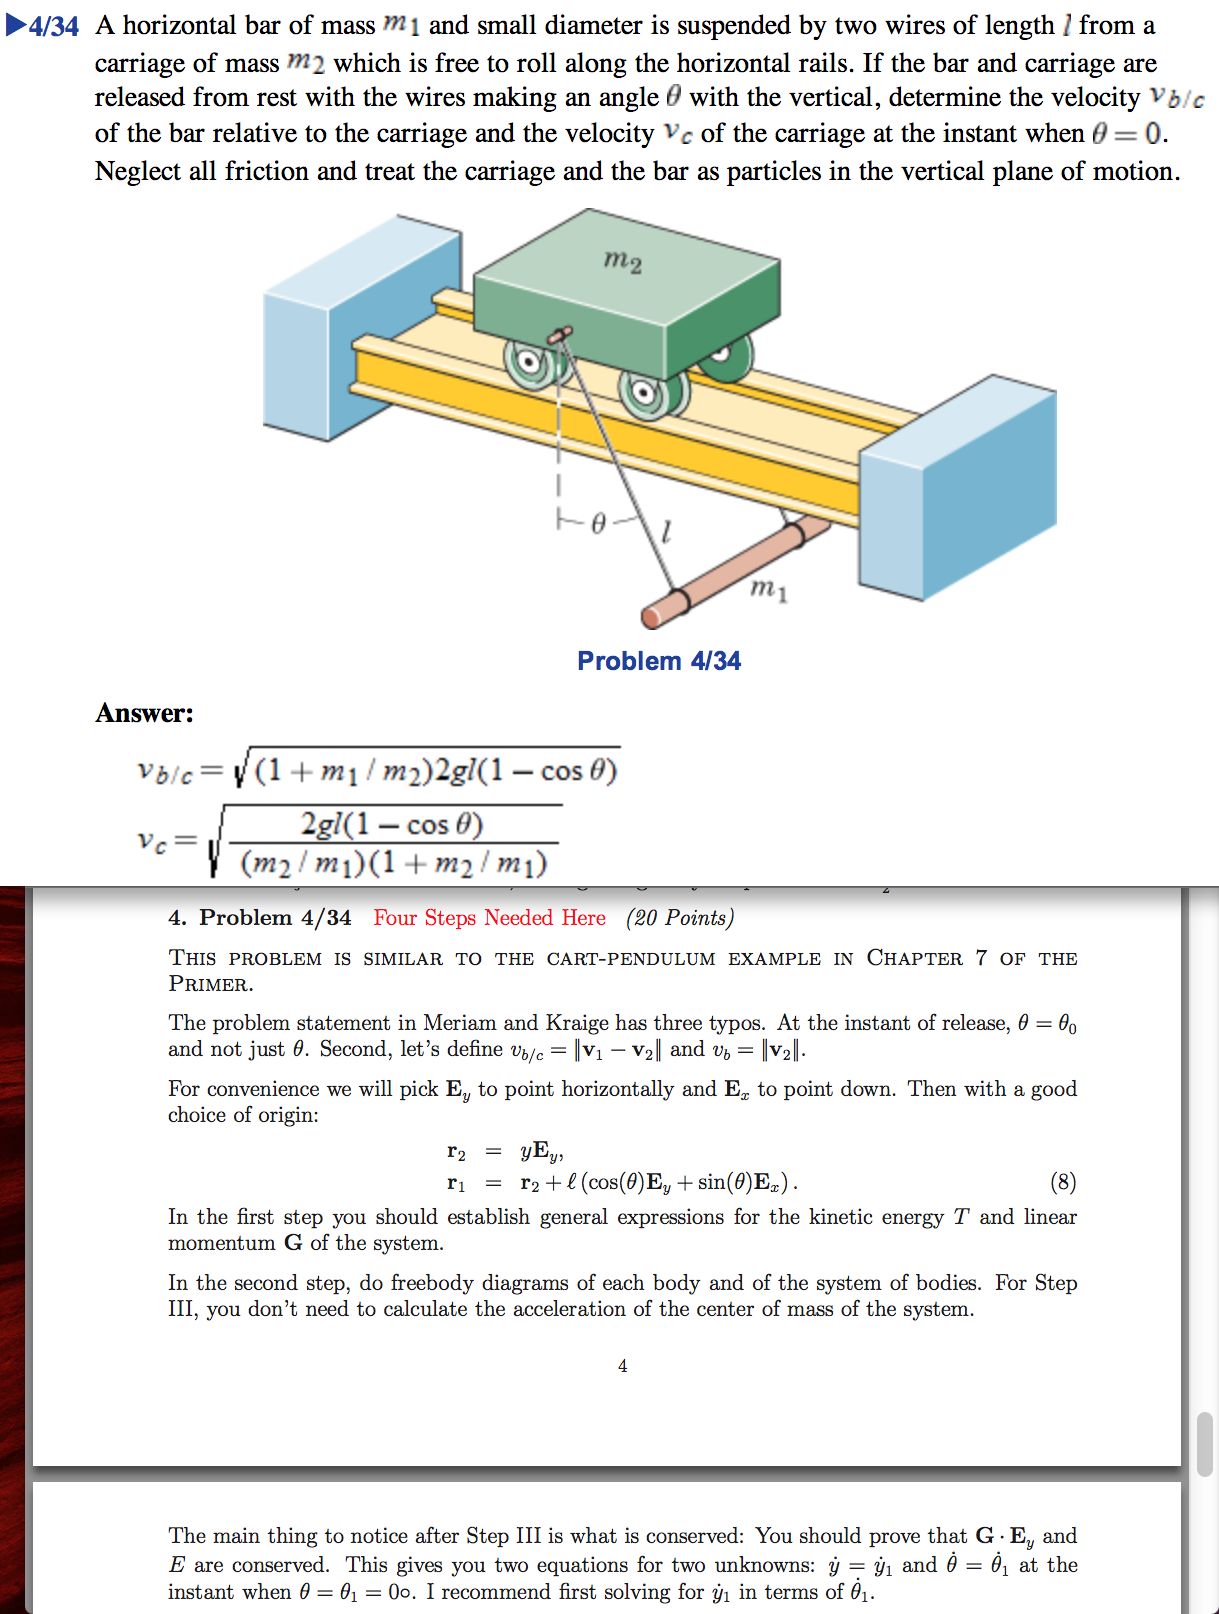 A horizontal bar of mass m1 and small diameter is